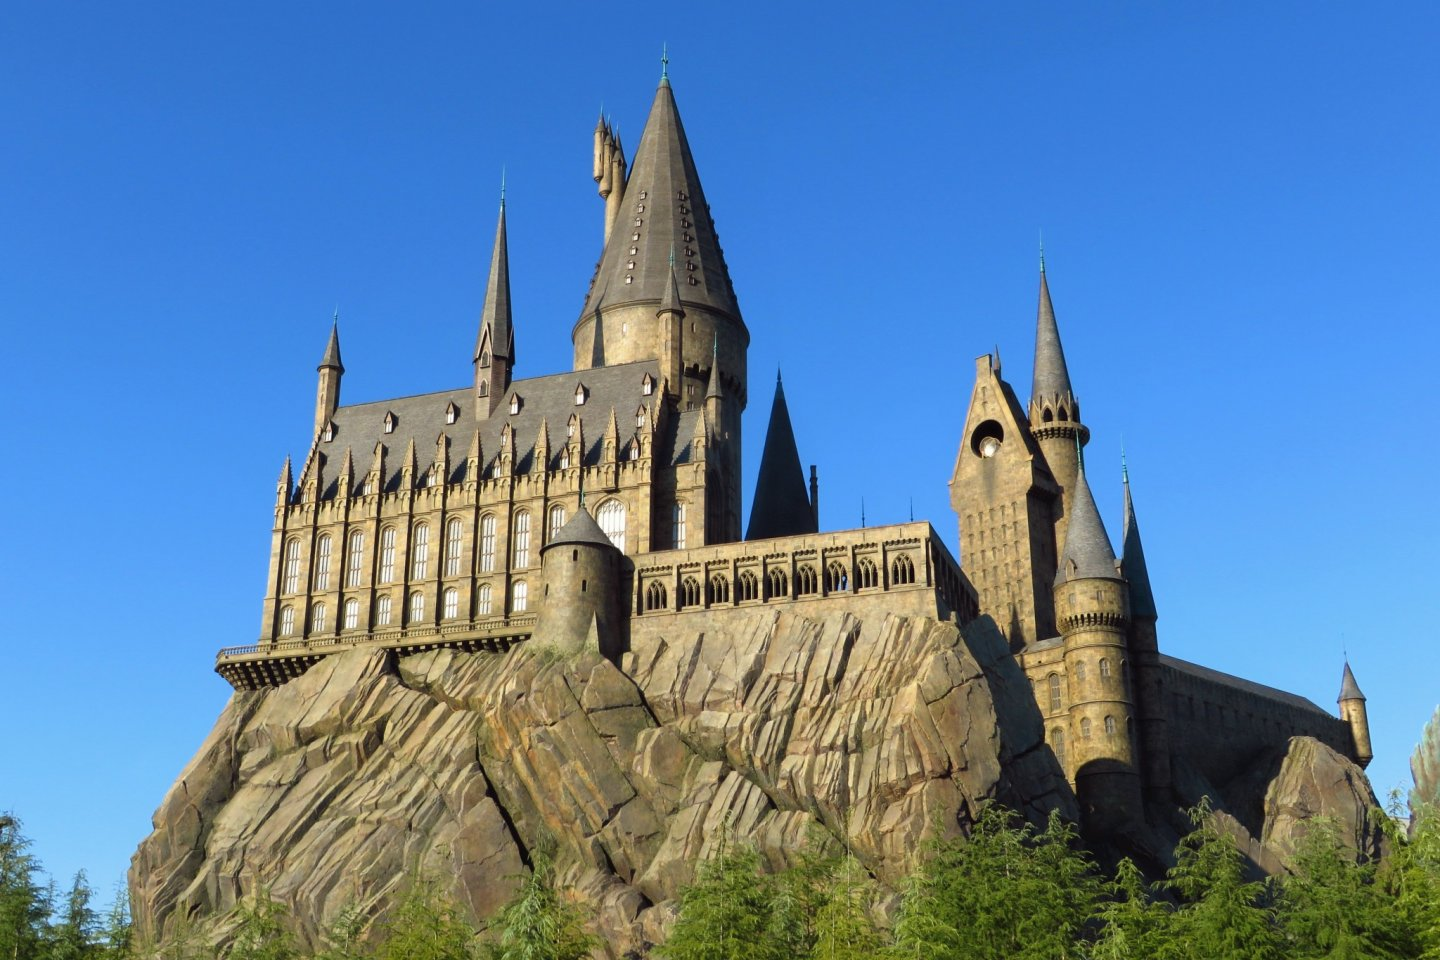 One of the main attractions: a reconstruction of Hogwarts